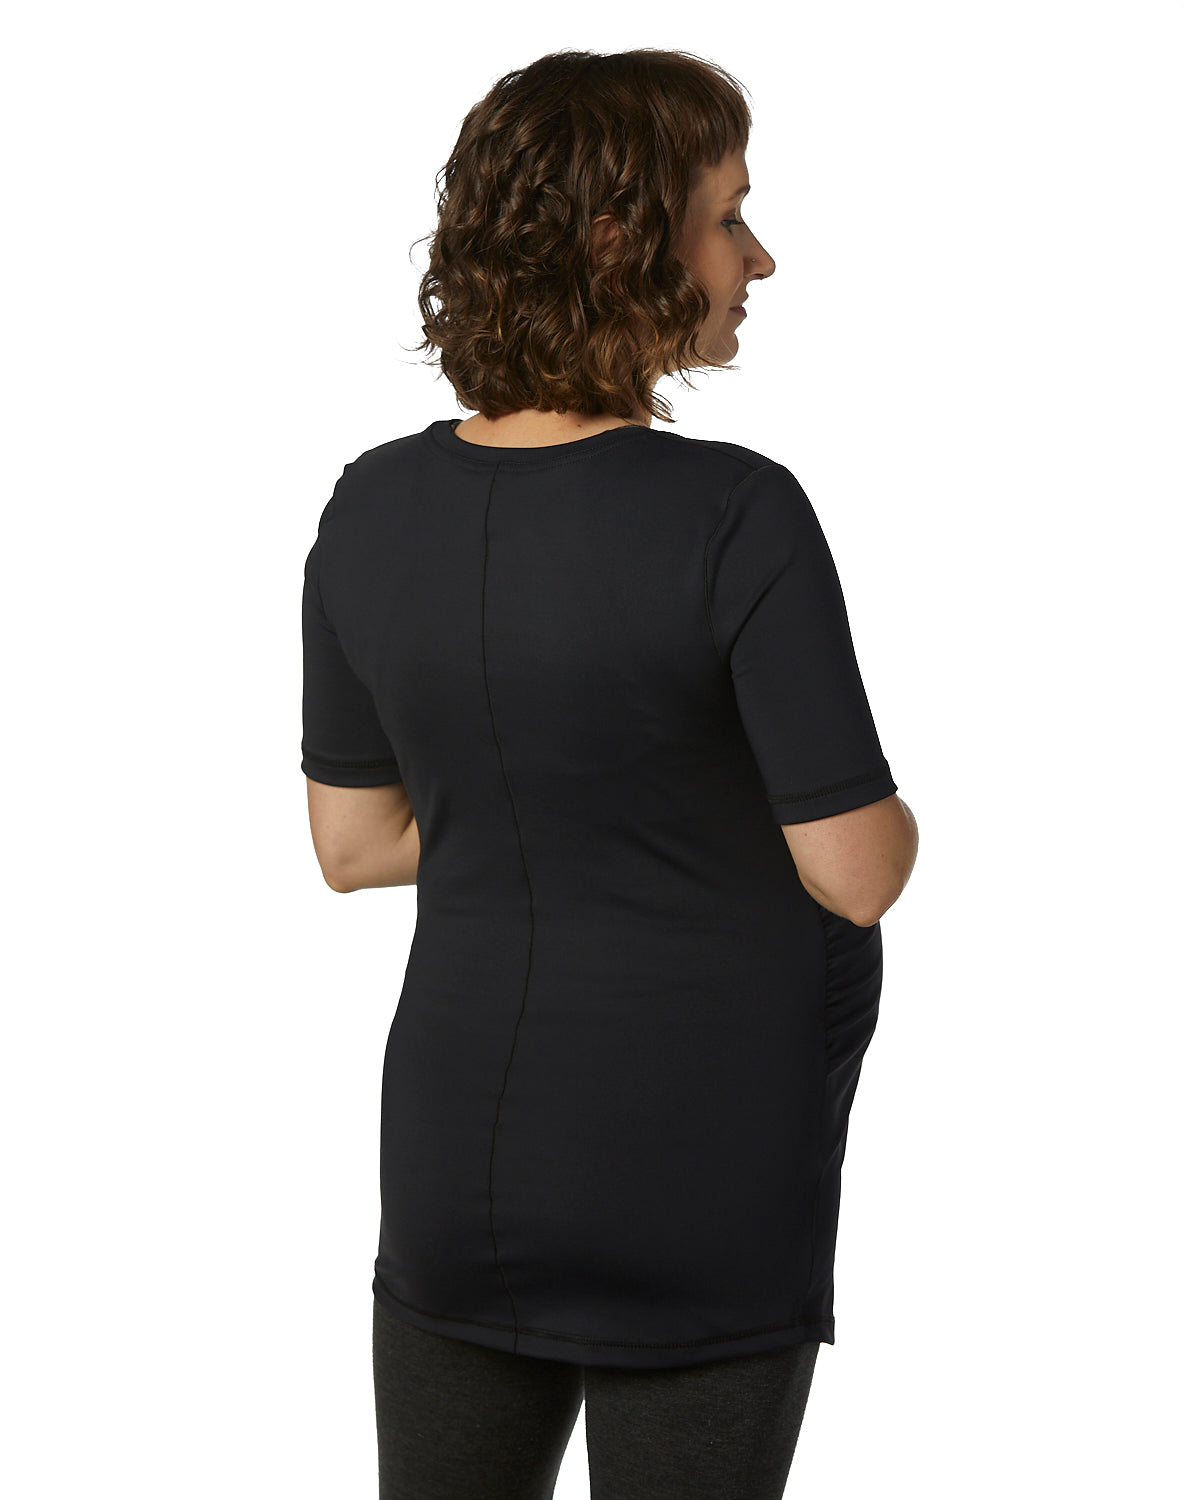 Maternity Baselayer Midweight T-shirt